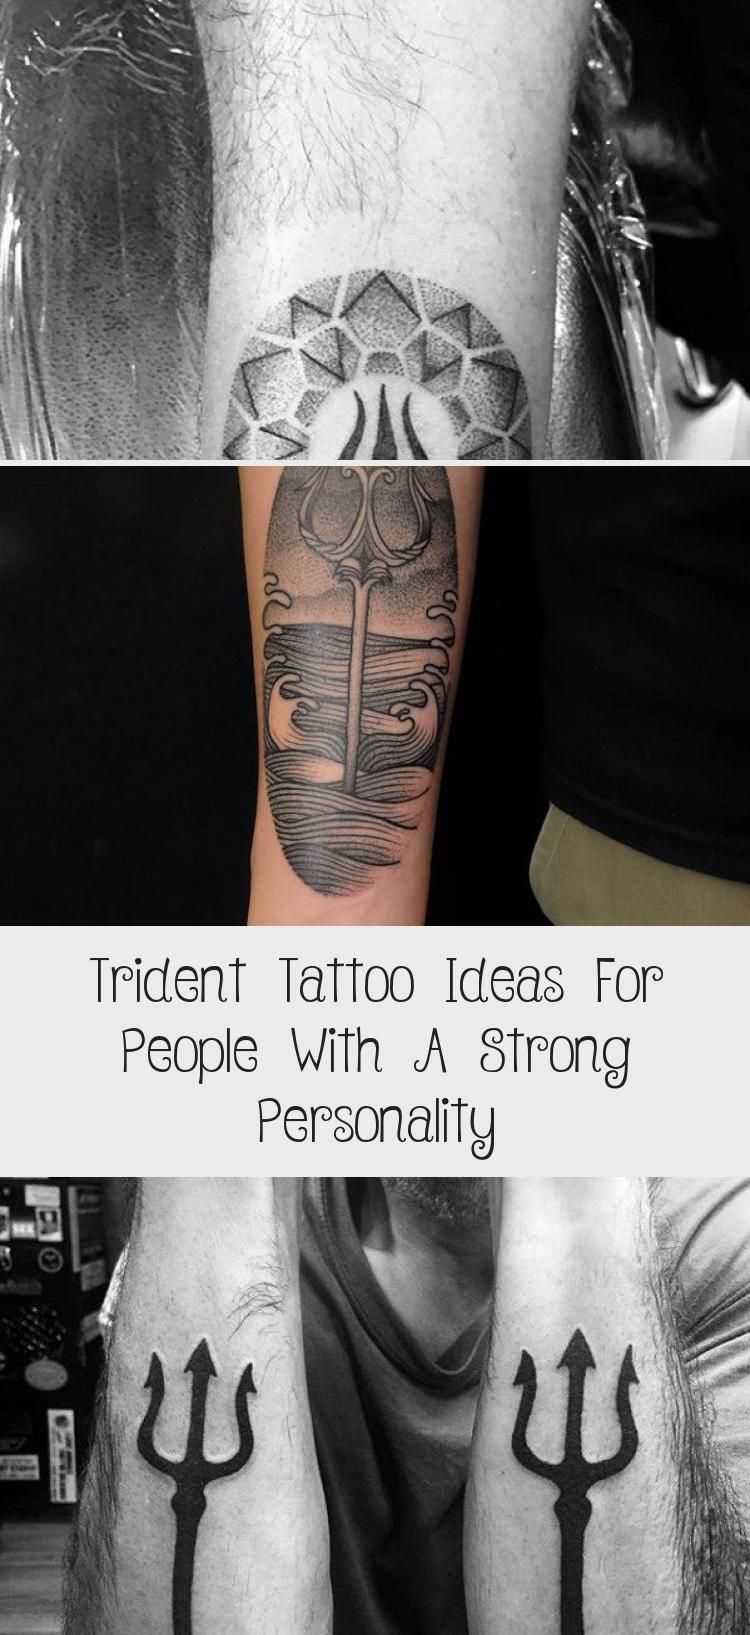 Trident Tattoo Ideas For People With A Strong Personality - tattoo body art  #Art #beingstrongtattoo #Body #ideas #people #Personality #Strong #tattoo #Trident